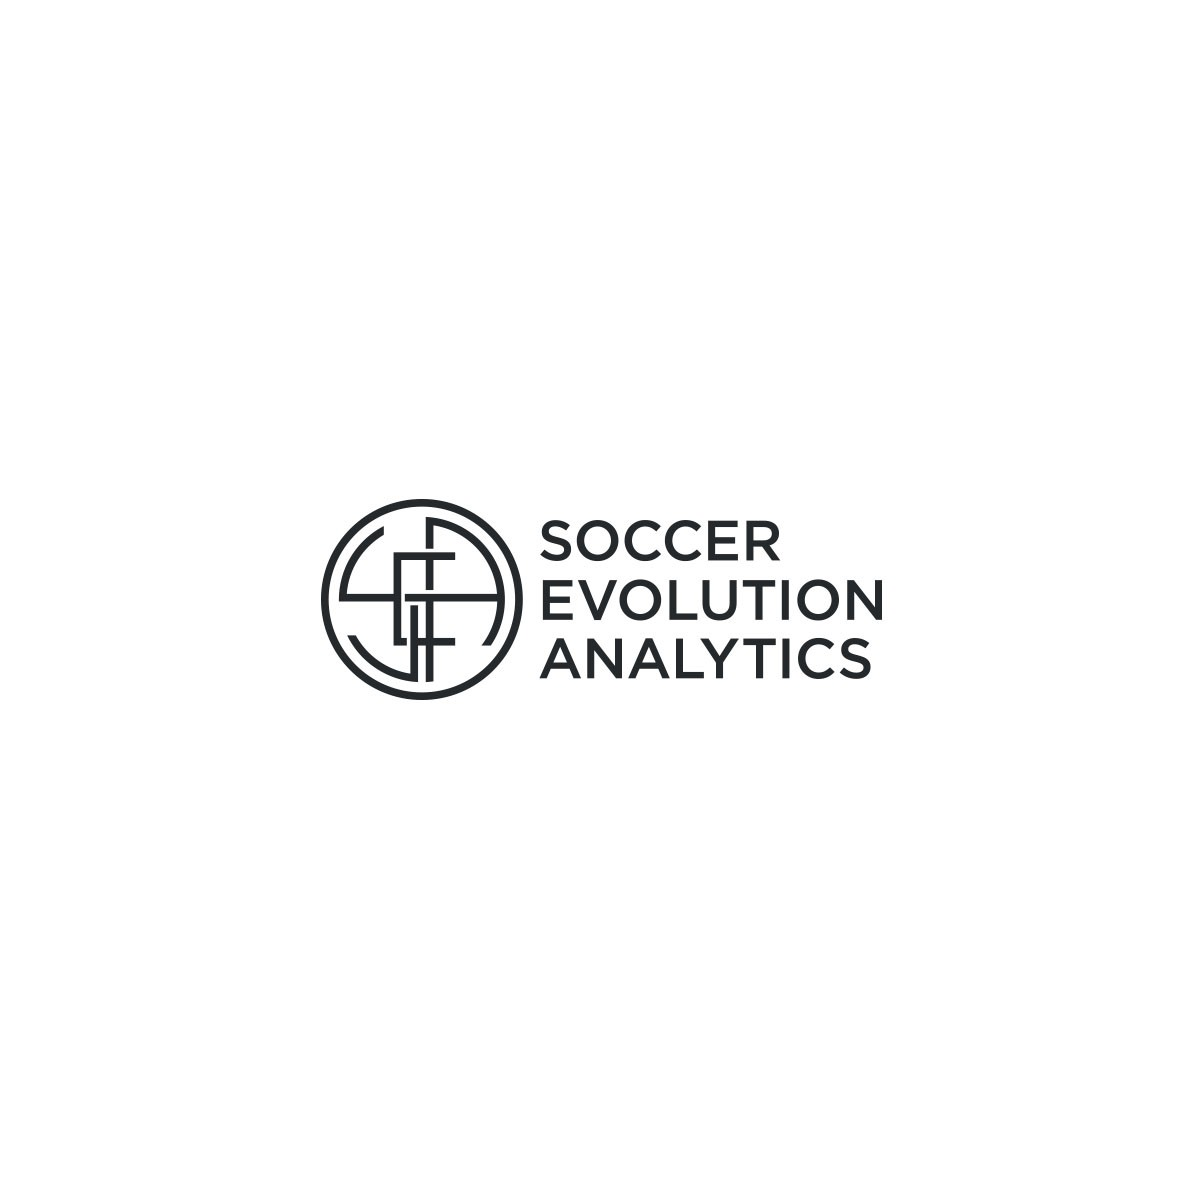 Design a modern logo for a data and analytics driven soccer training company.